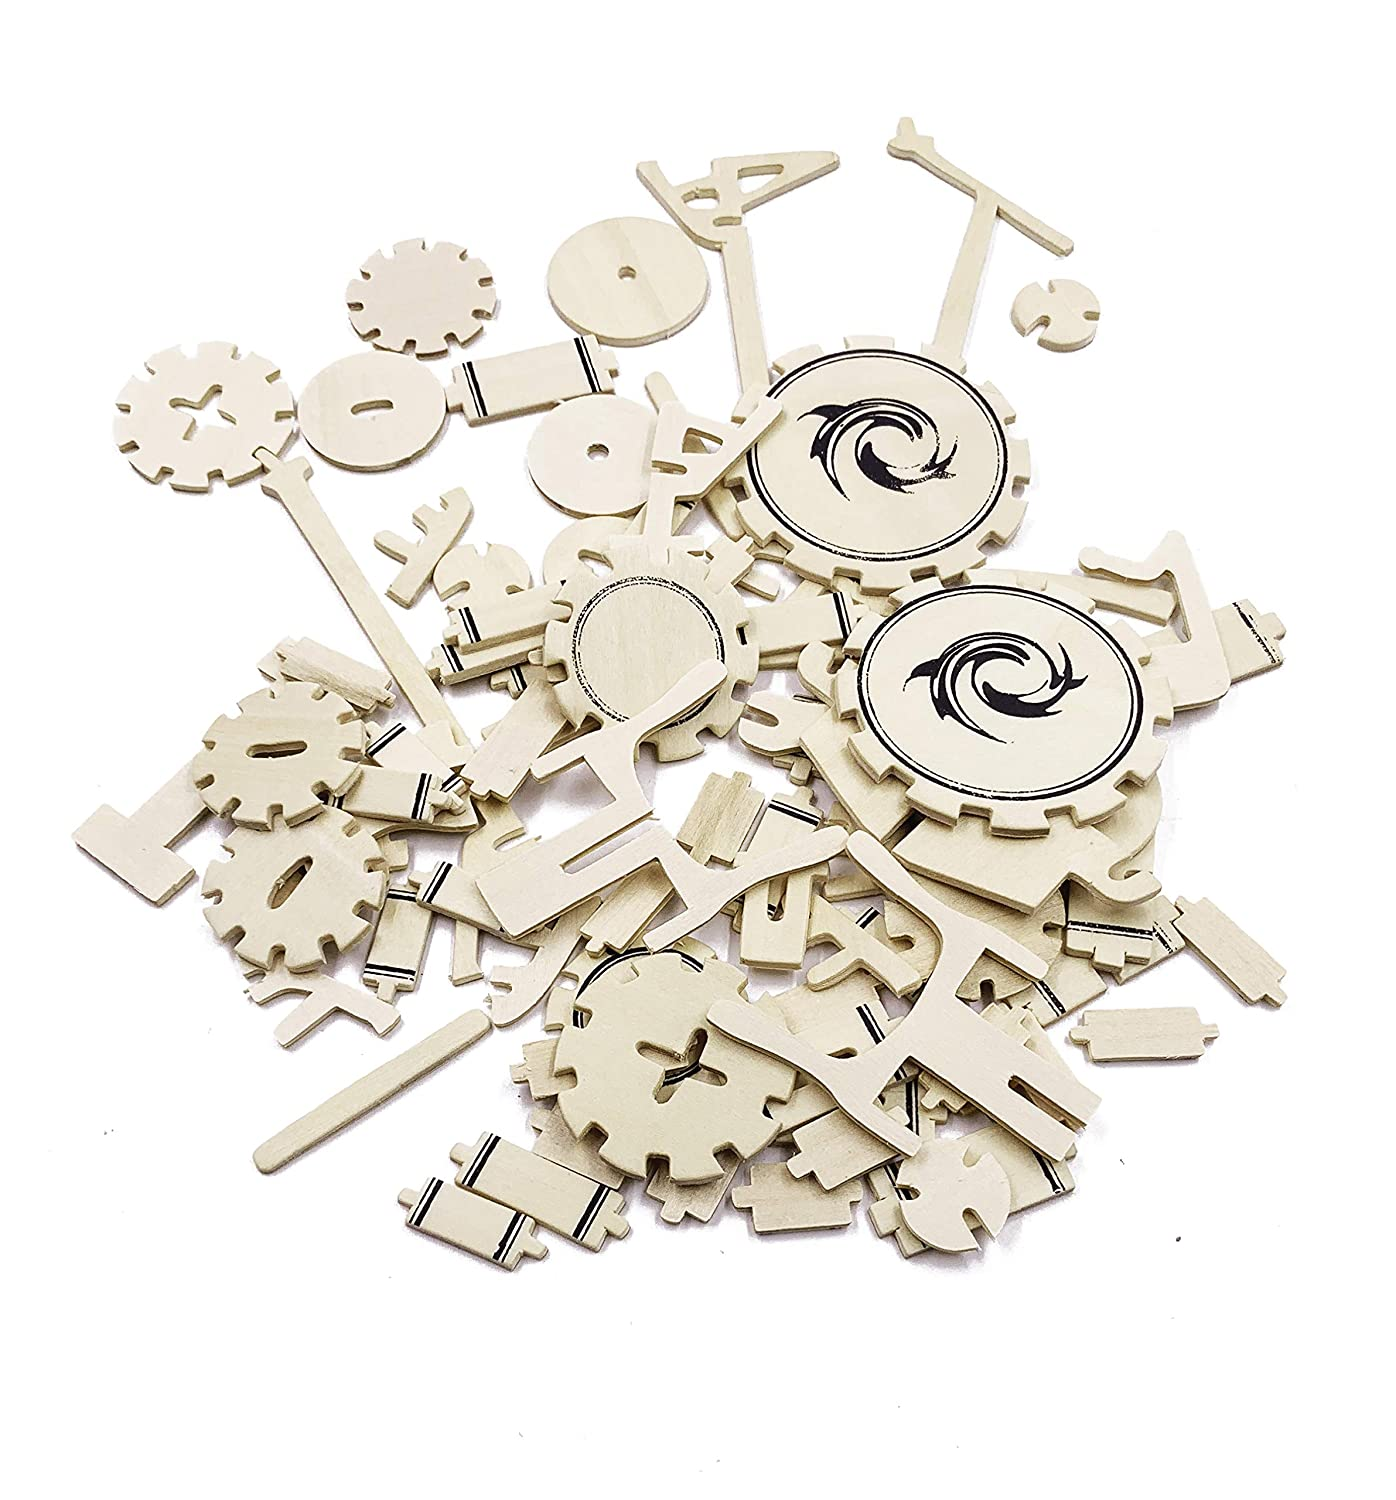 3D Wooden Jazz Drum Puzzle Manual Jigsaw Stereo Simulation Model Children Puzzle Ideal Gifts for Adults and Kids/ SEA-LAND